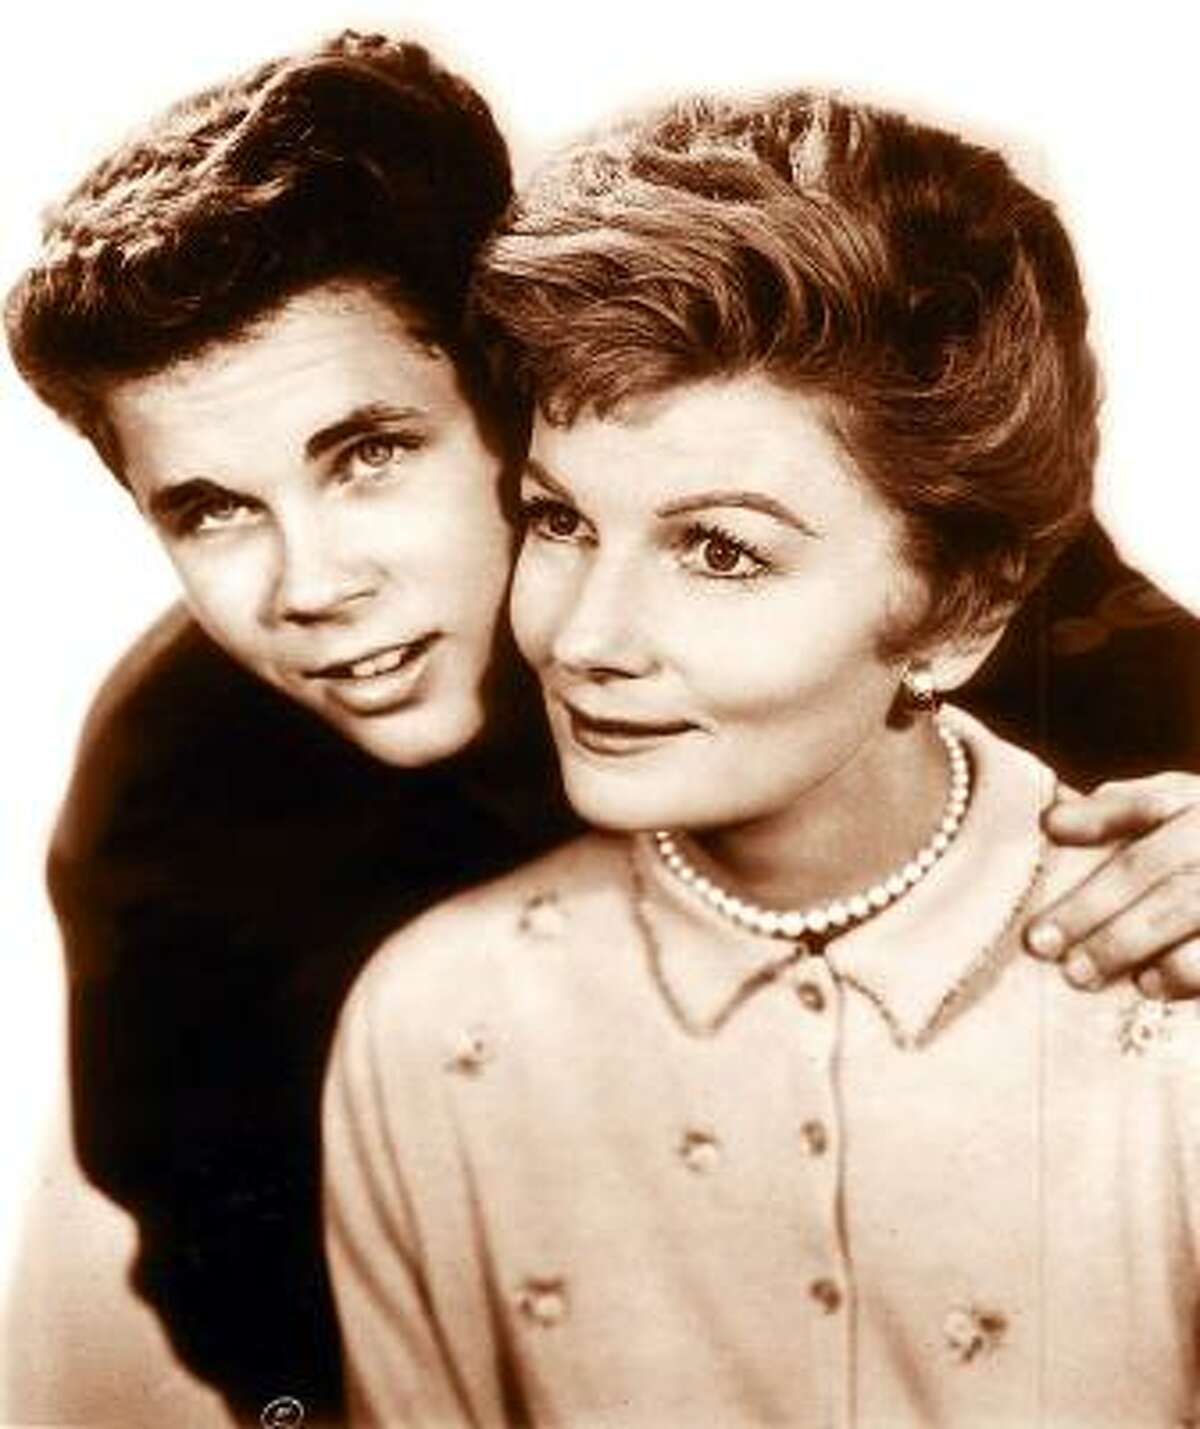 Barbara Billingsley - June Cleaver on 'Leave it to Beaver' She was so good that people still use her as a great example 60 years later.